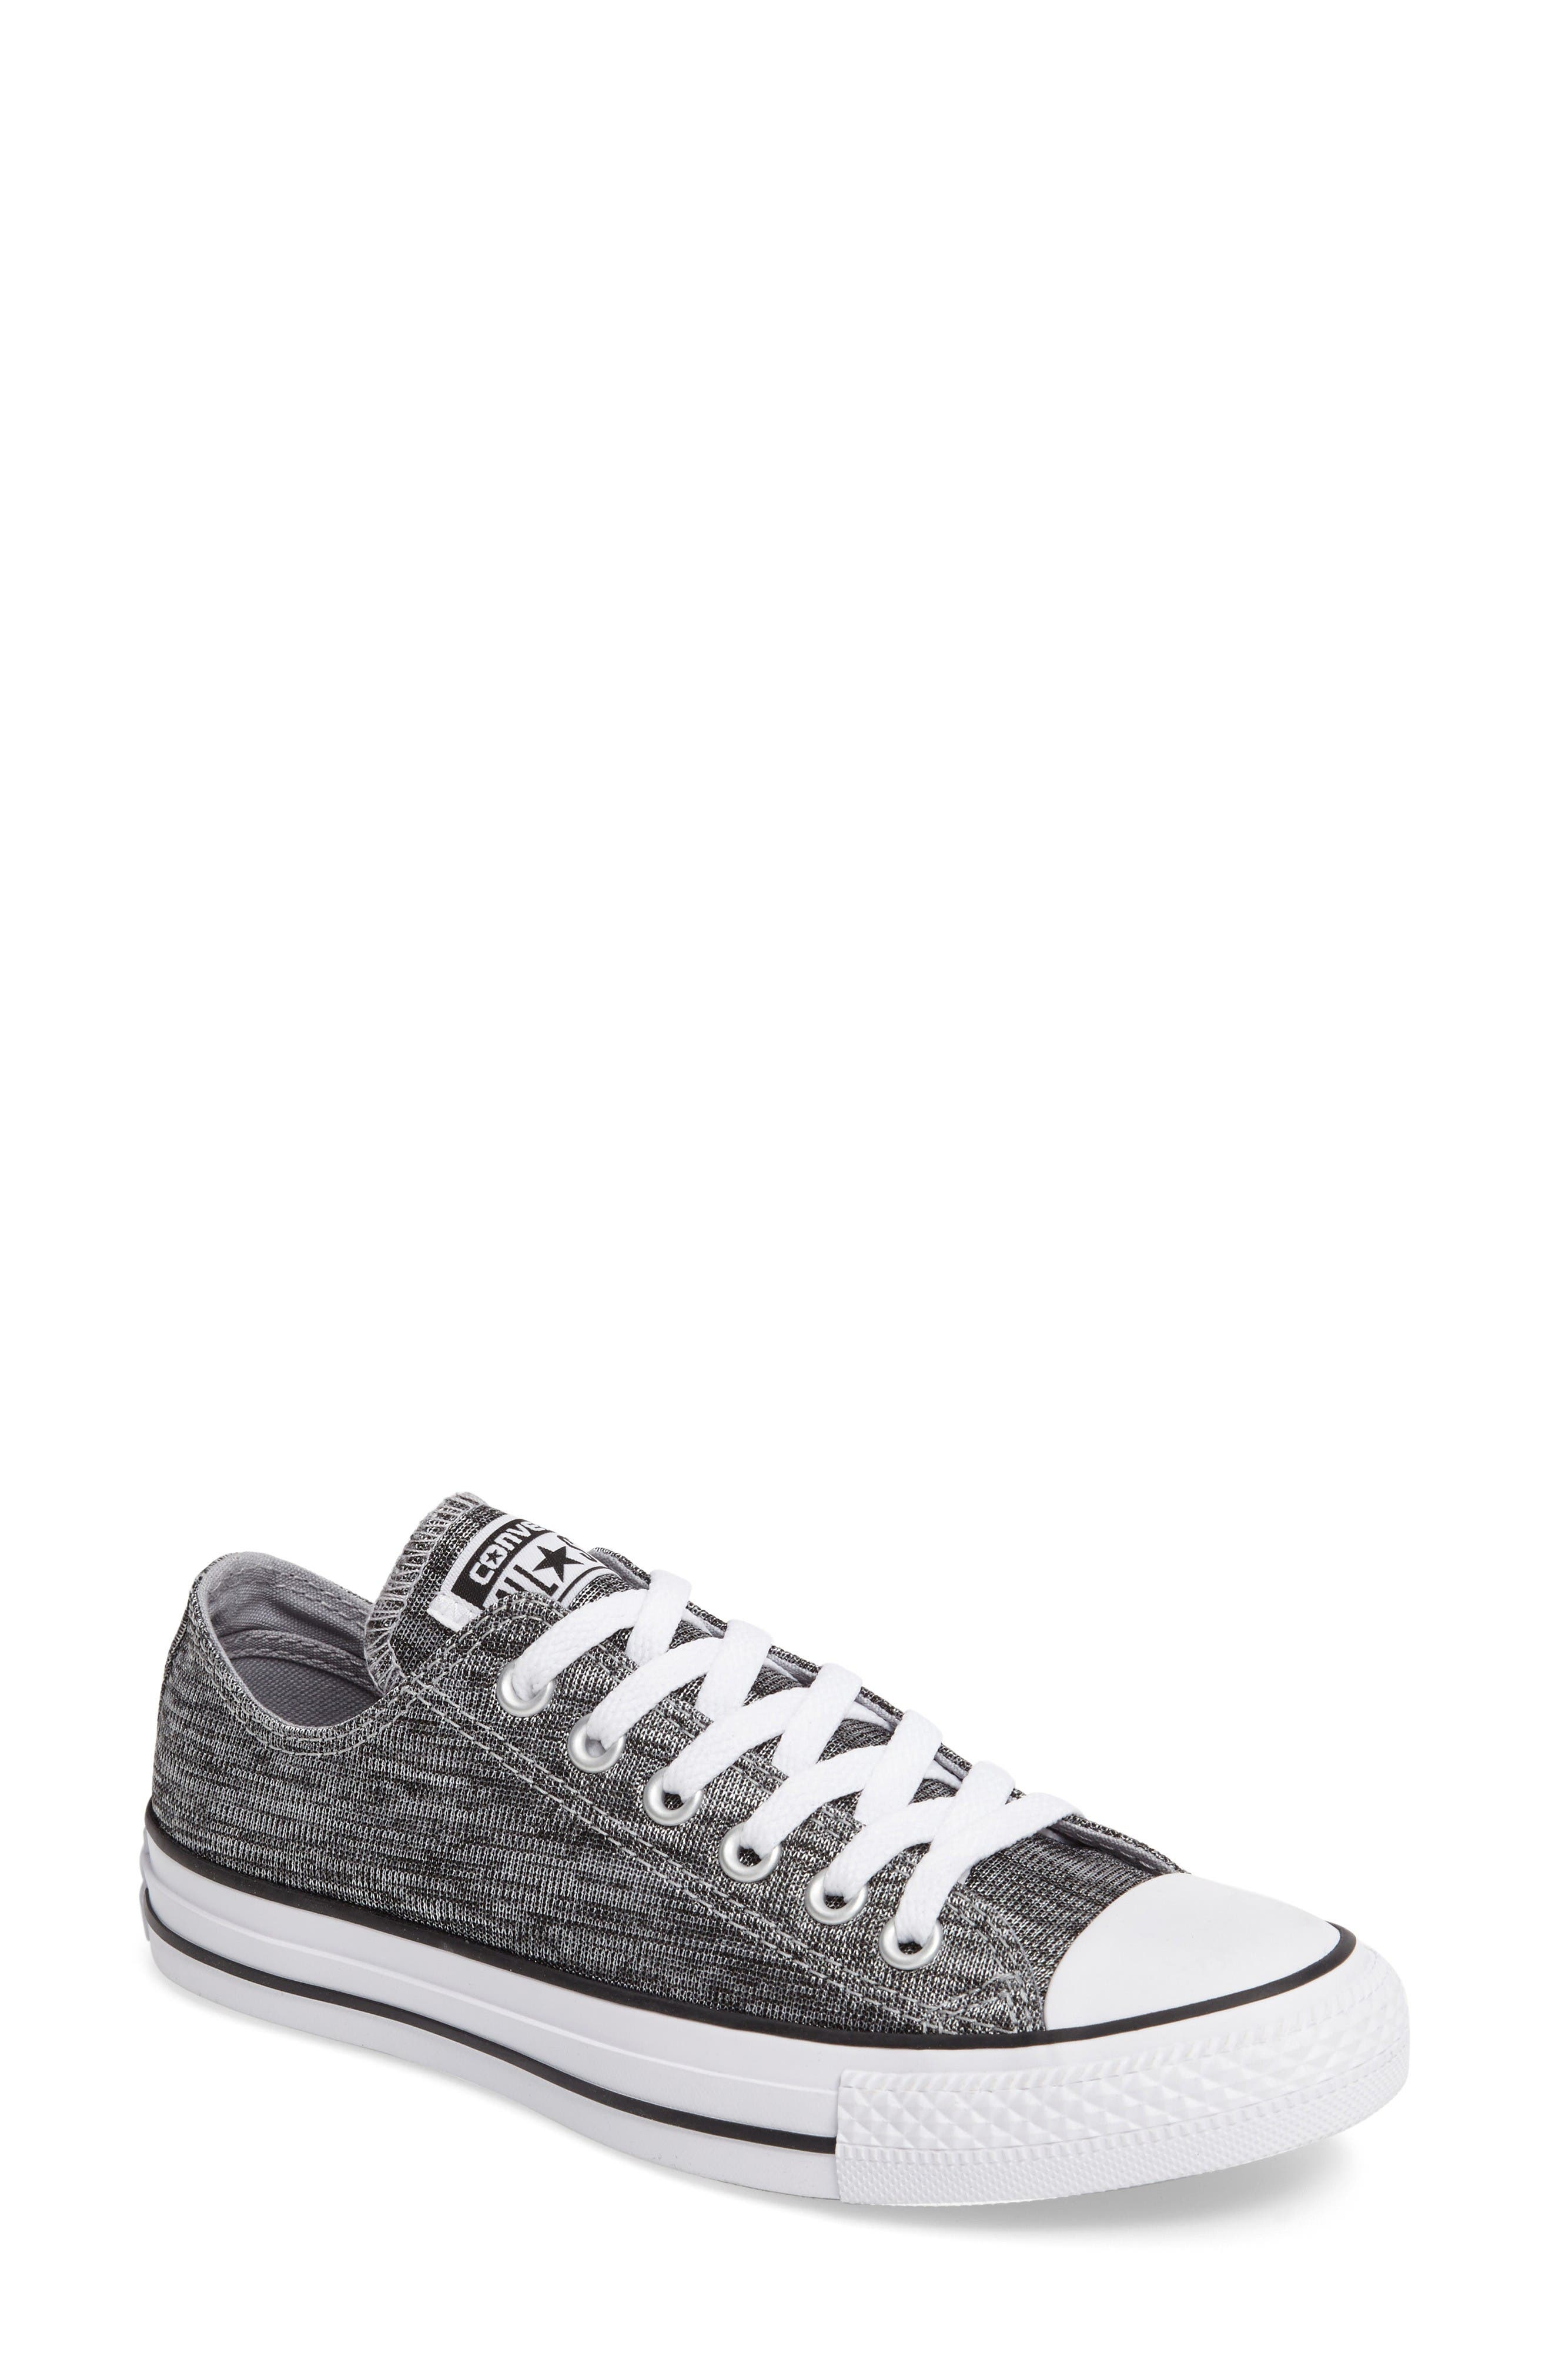 Main Image - Converse Chuck Taylor® All Star® Knit Low Top Sneaker (Women)